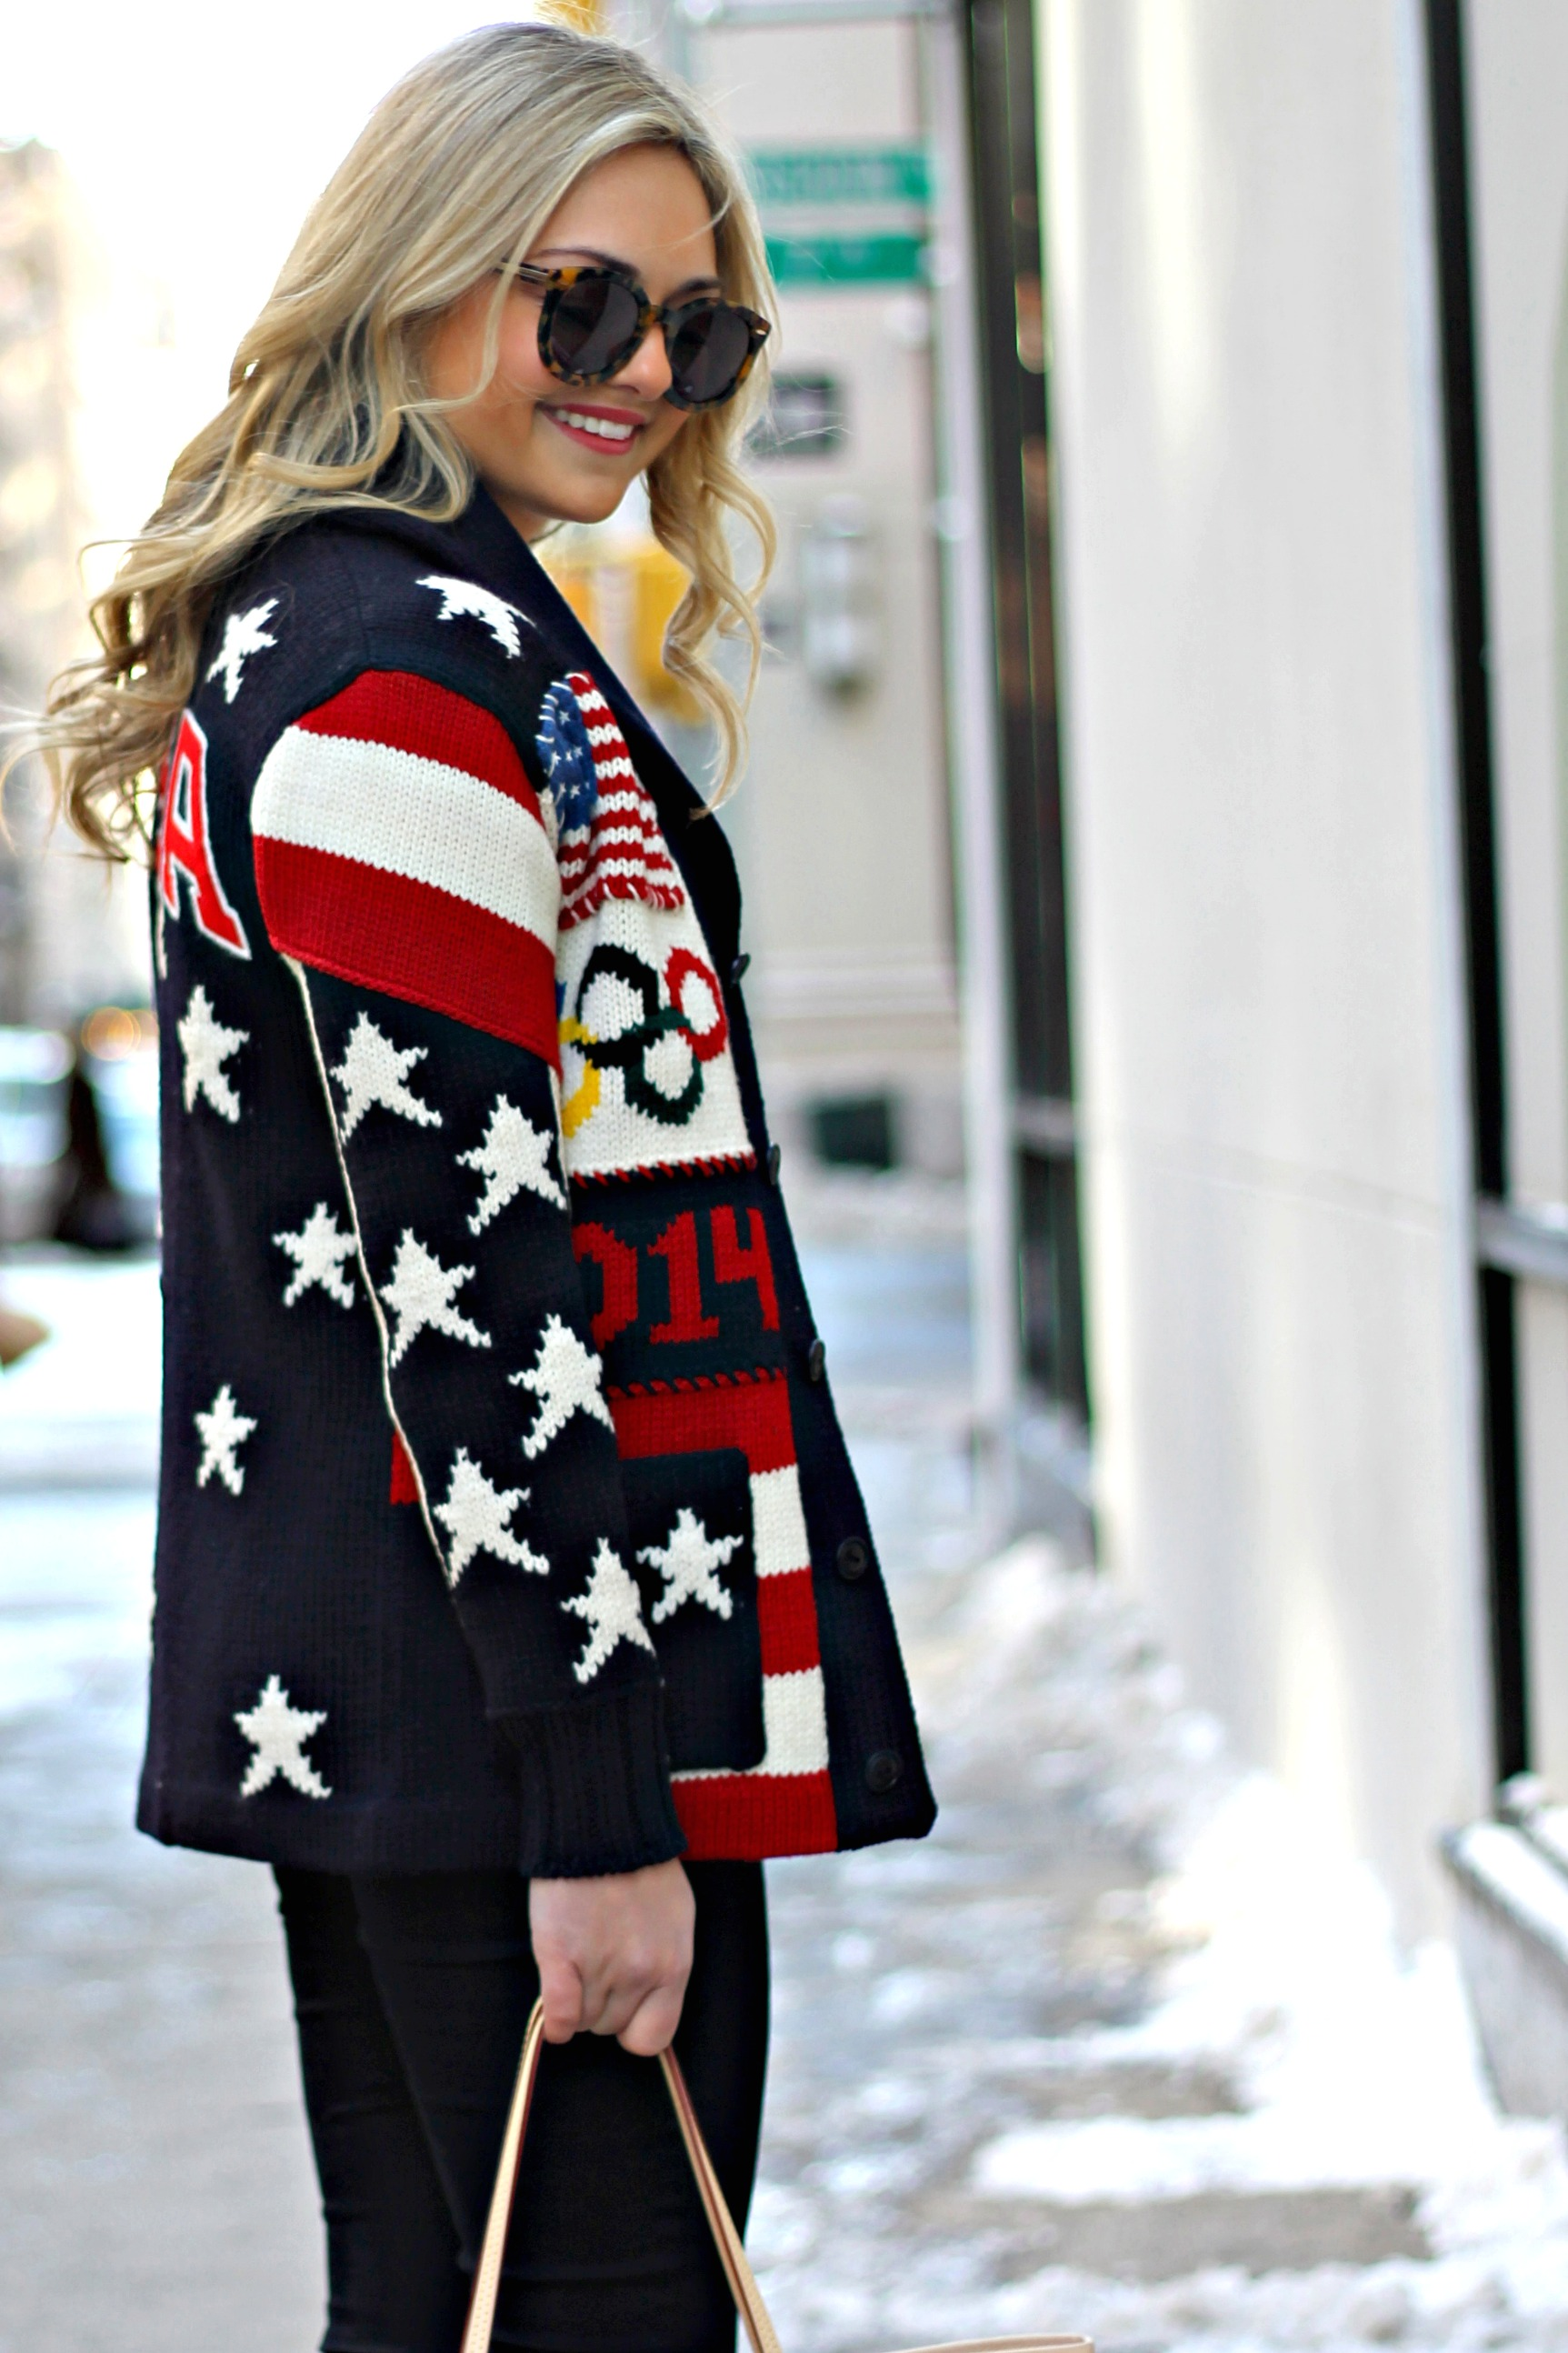 Go Bold or Go Home! Wild Team USA Sweaters Cause a Stir for Viewers and Collectors. By Trey Treutel | Feb 10, Tweet 3. Share 5. Pin 1 +1. 9 Shares. If you happened to catch the opening ceremony for the Sochi Winter Olympics, you were met with pageantry, fireworks and plenty of excitement for the upcoming games. TEAM USA.